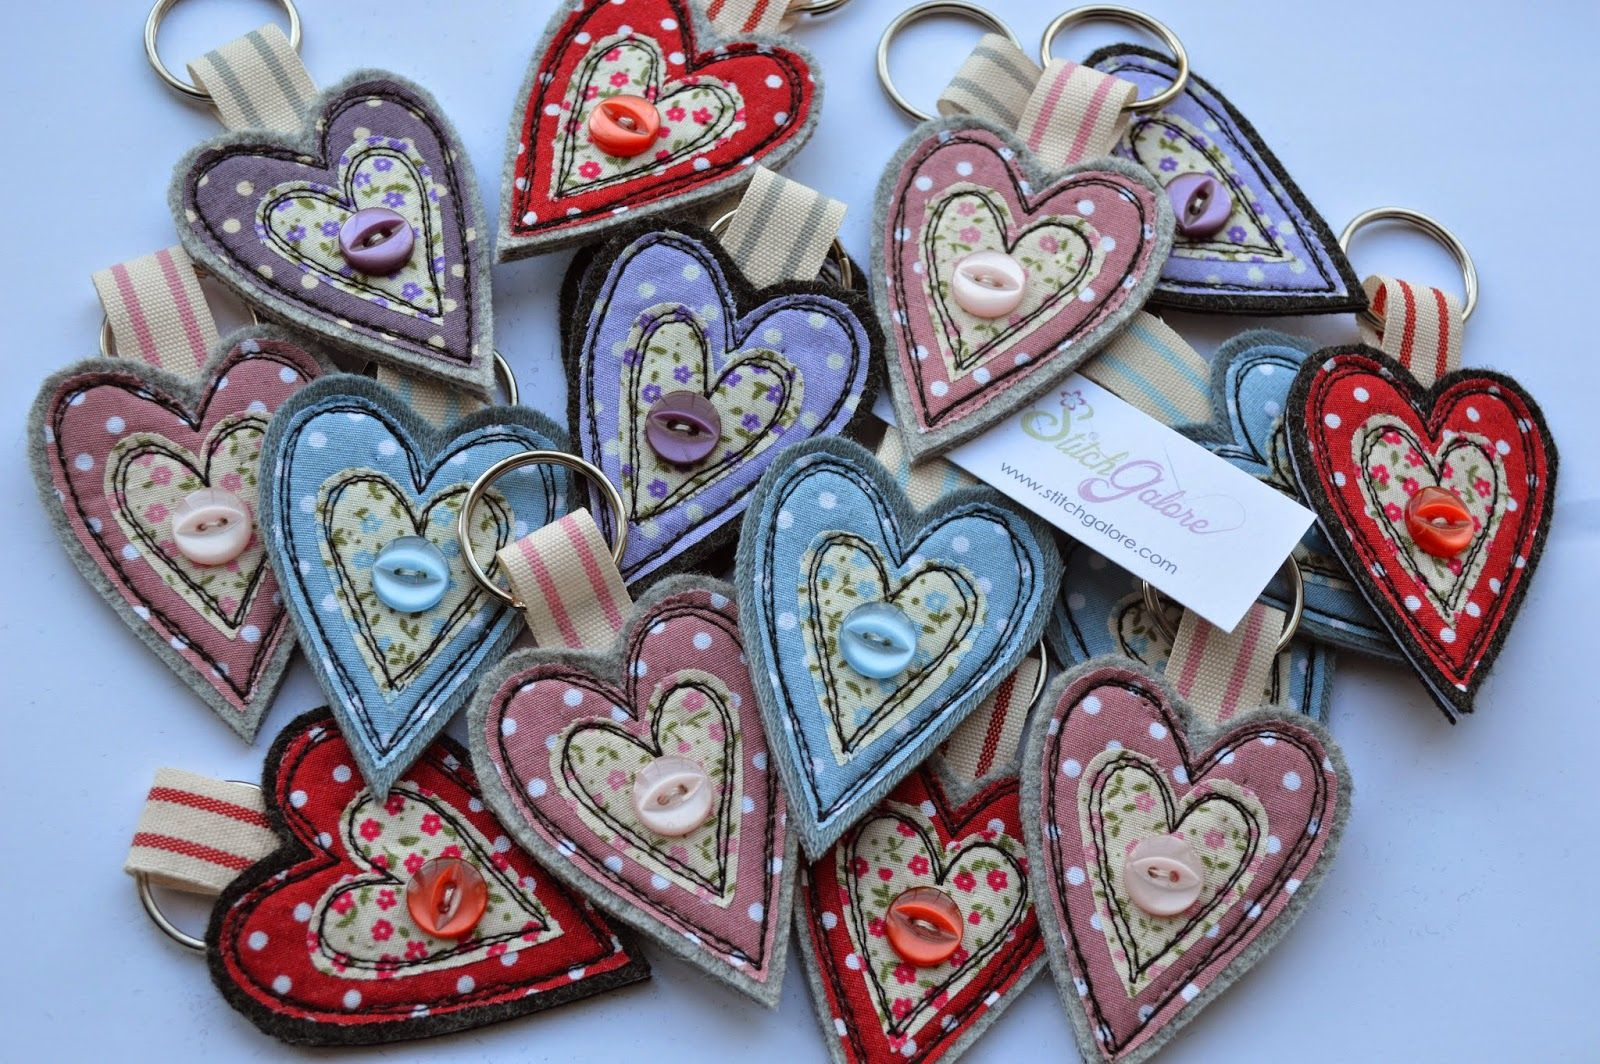 Handmade key rings decorated with freehand machine embroidery. www.stitchgalore.com